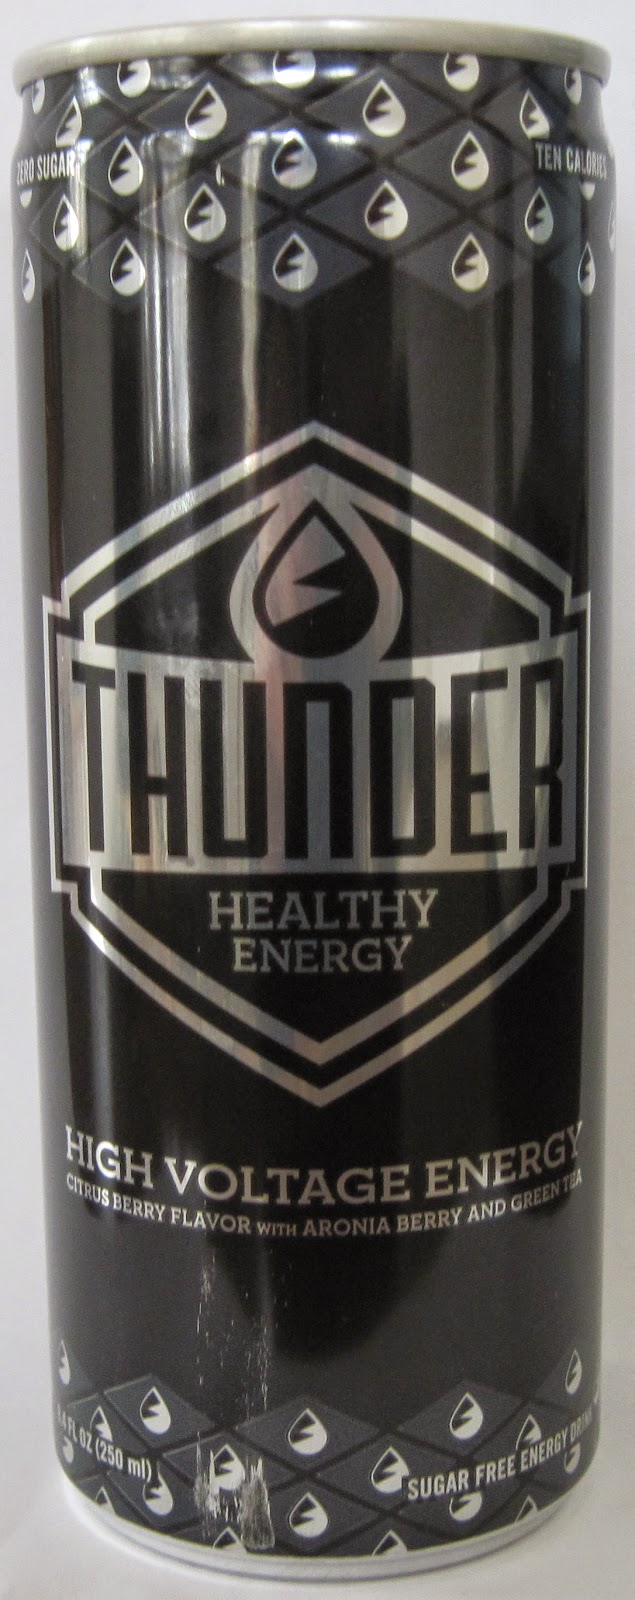 Thunder Healthy Energy Drink Review